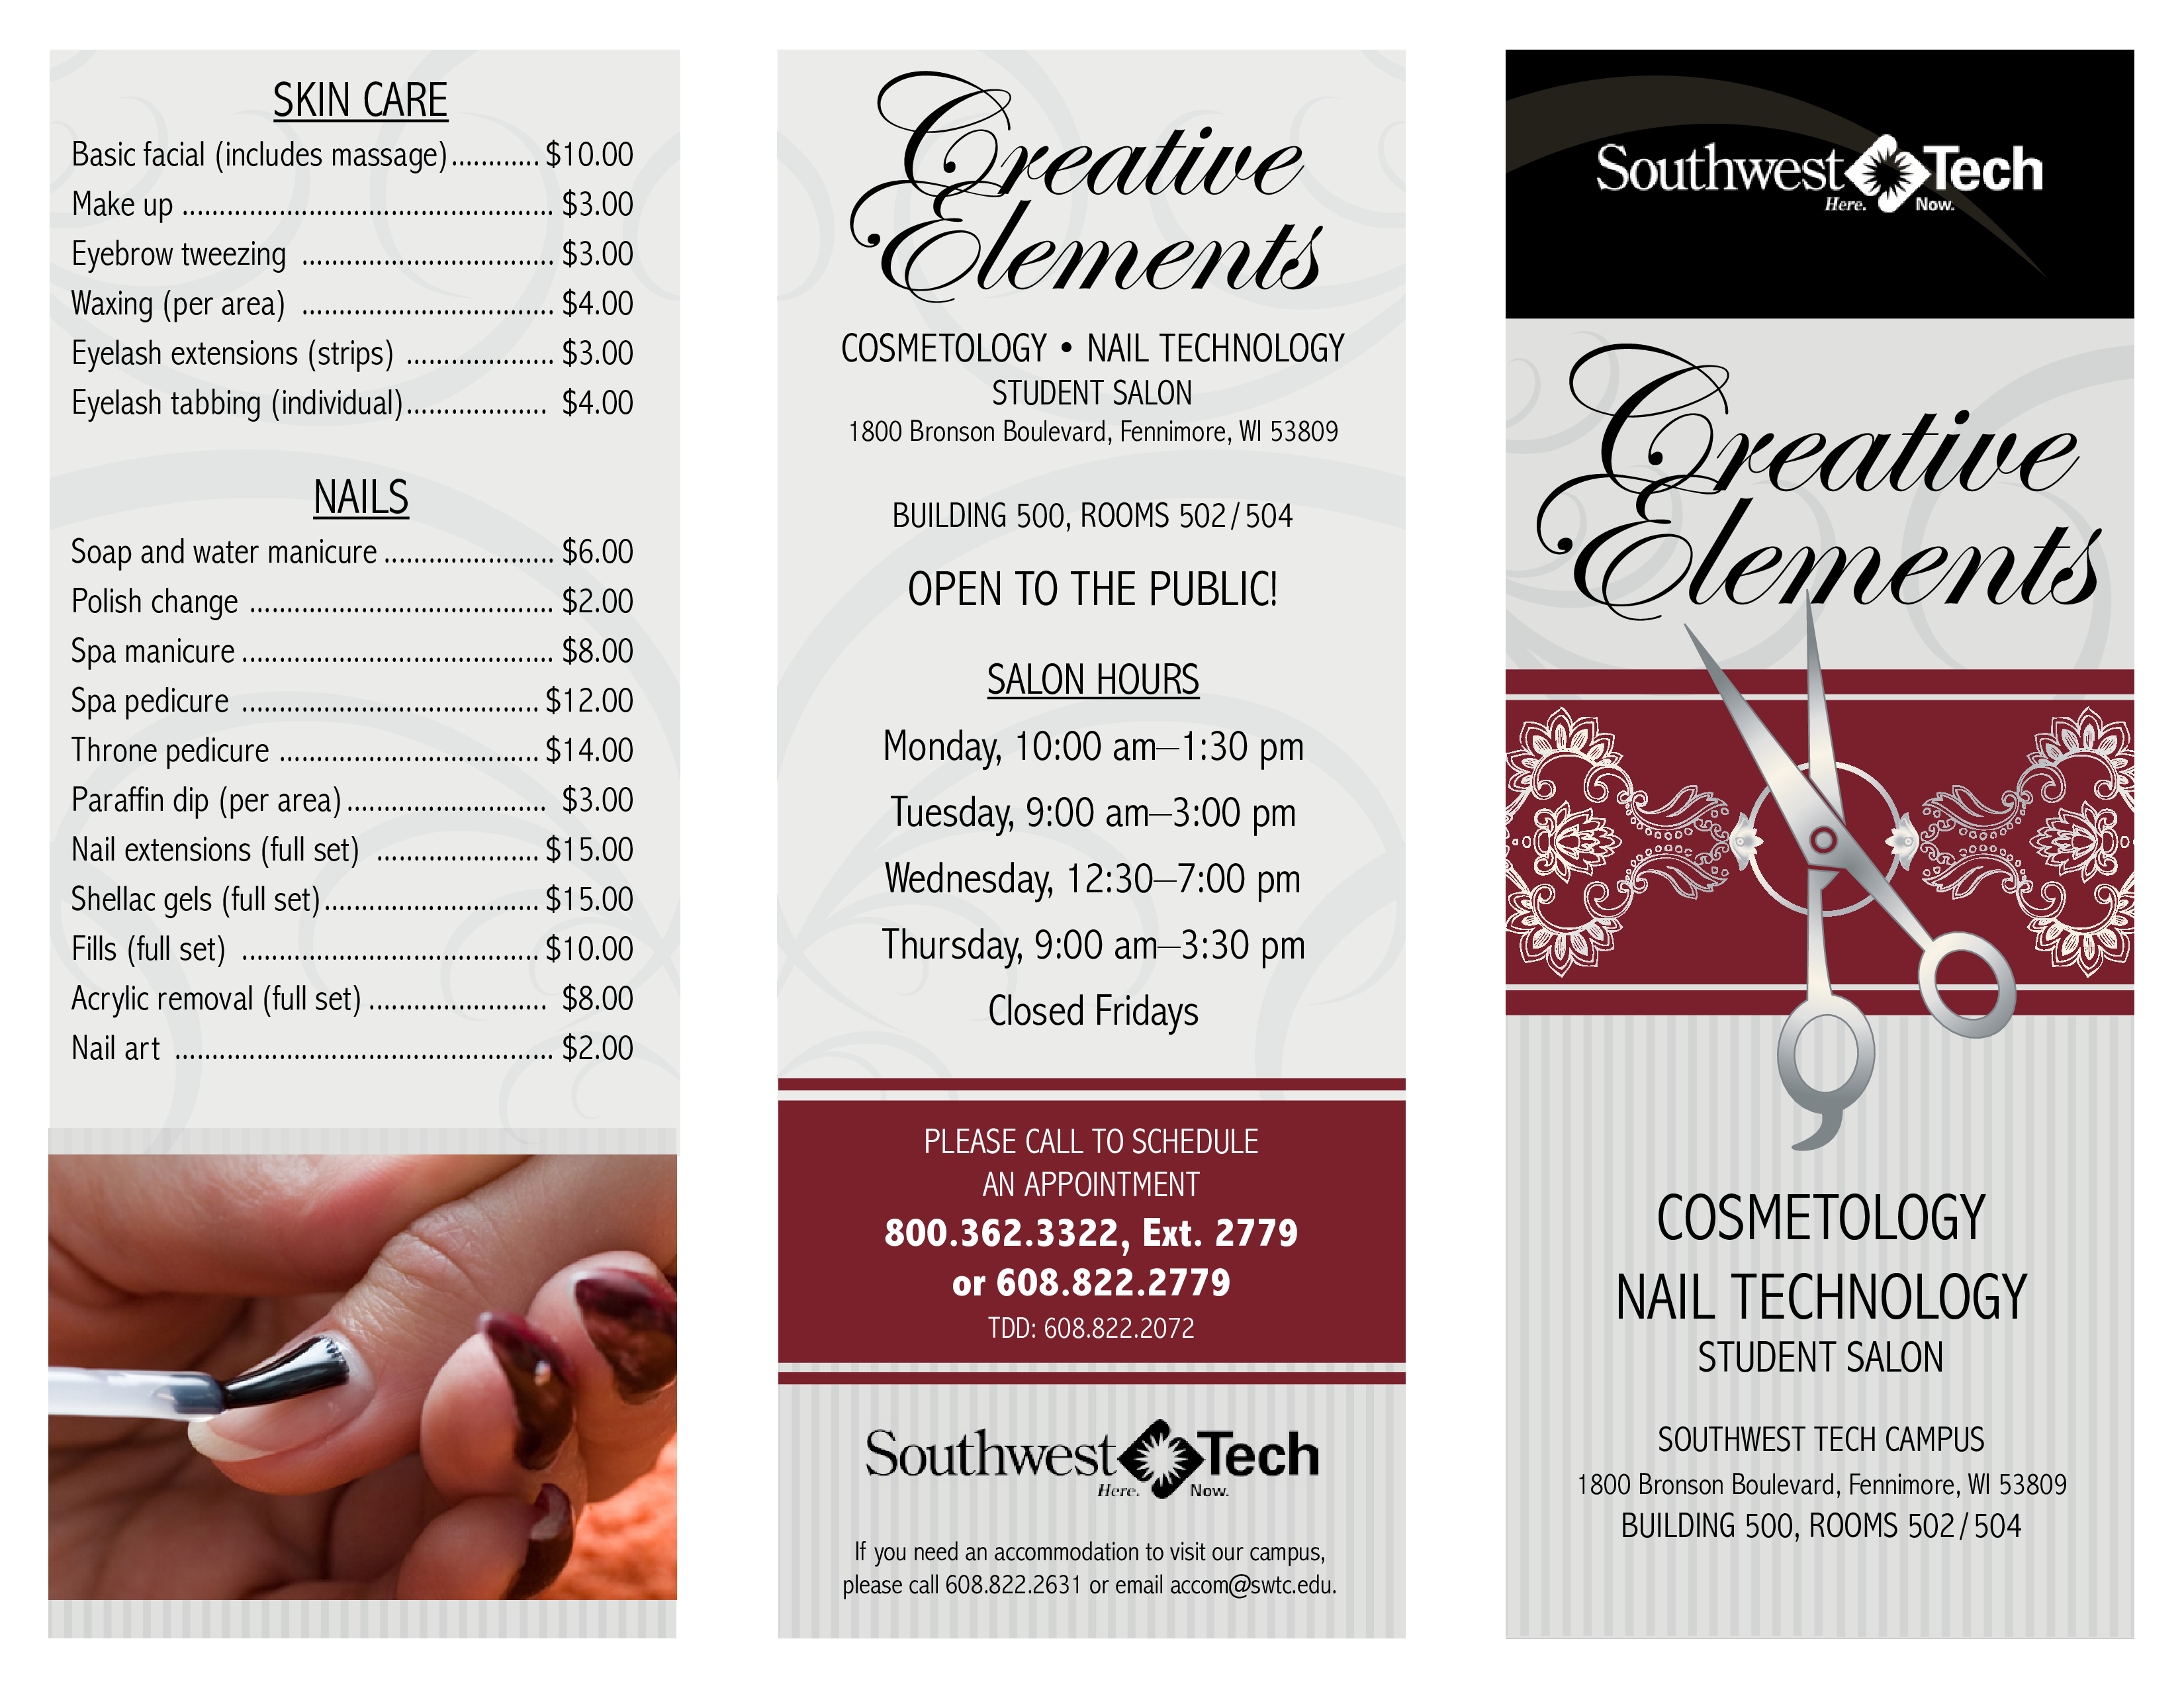 creative elements salon price list templates at